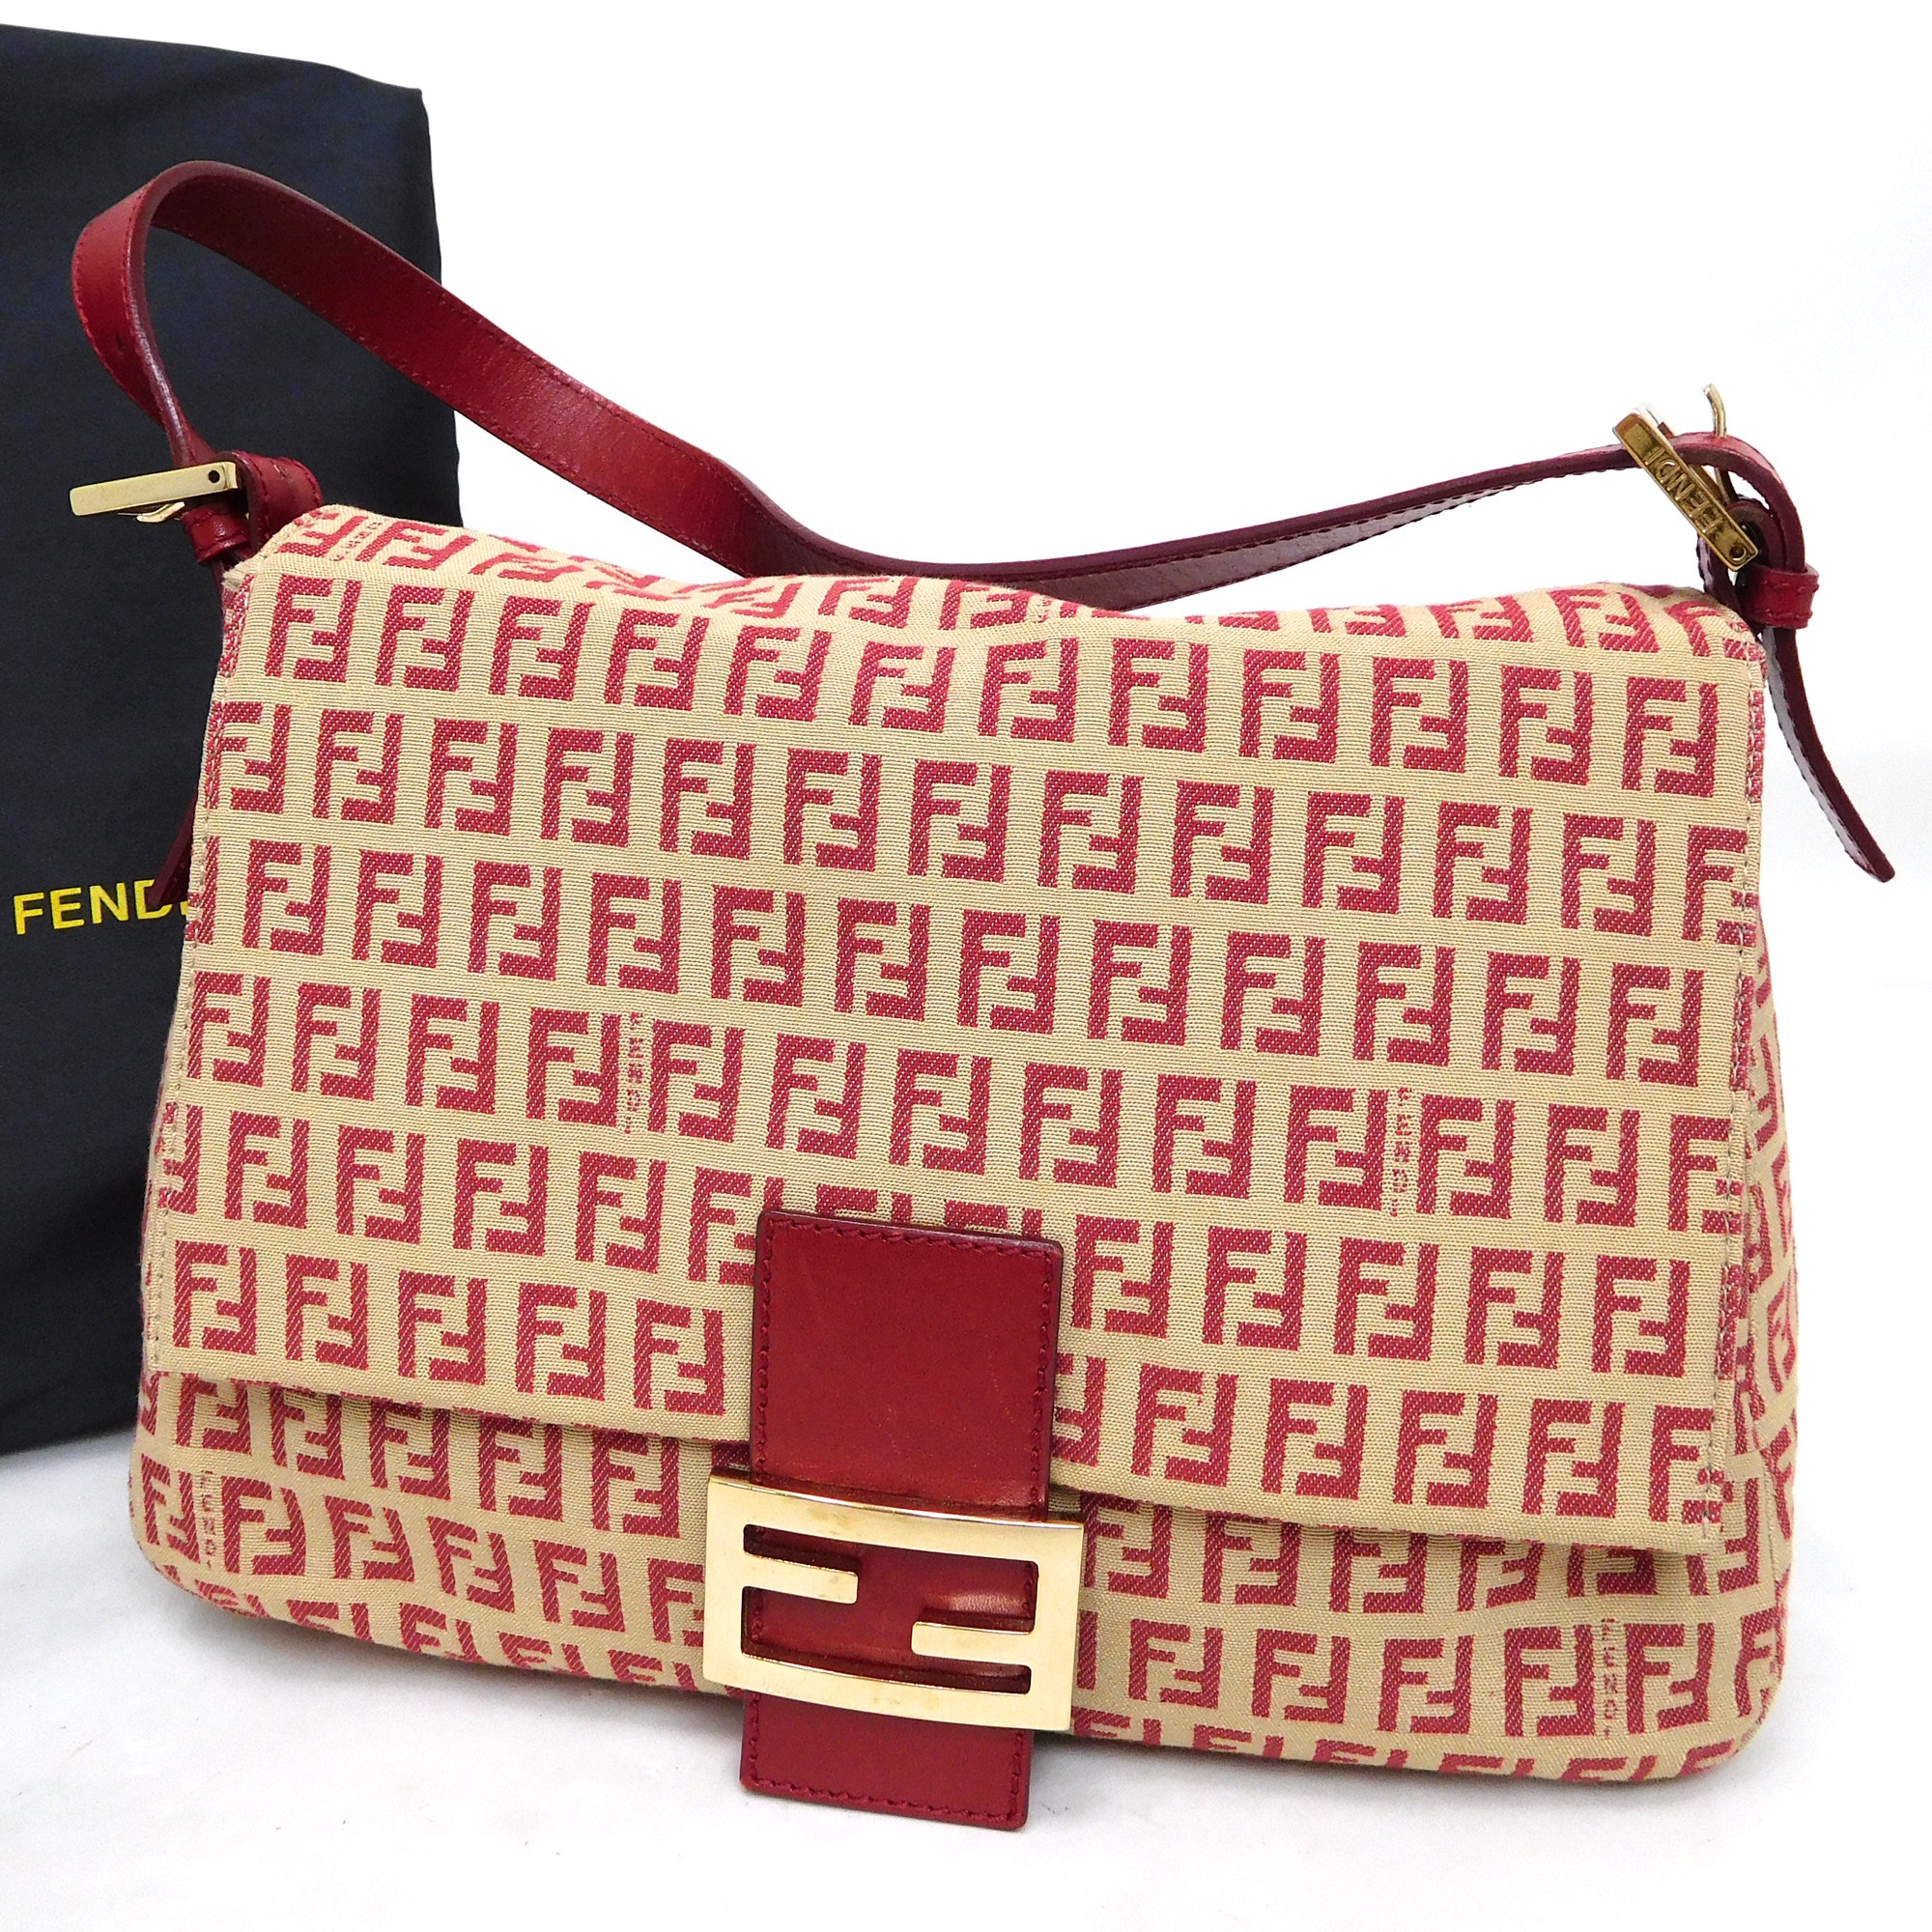 3a883efab9 Auth Fendi Zucchino Mamma Baguette 8BR001 Women s Leather